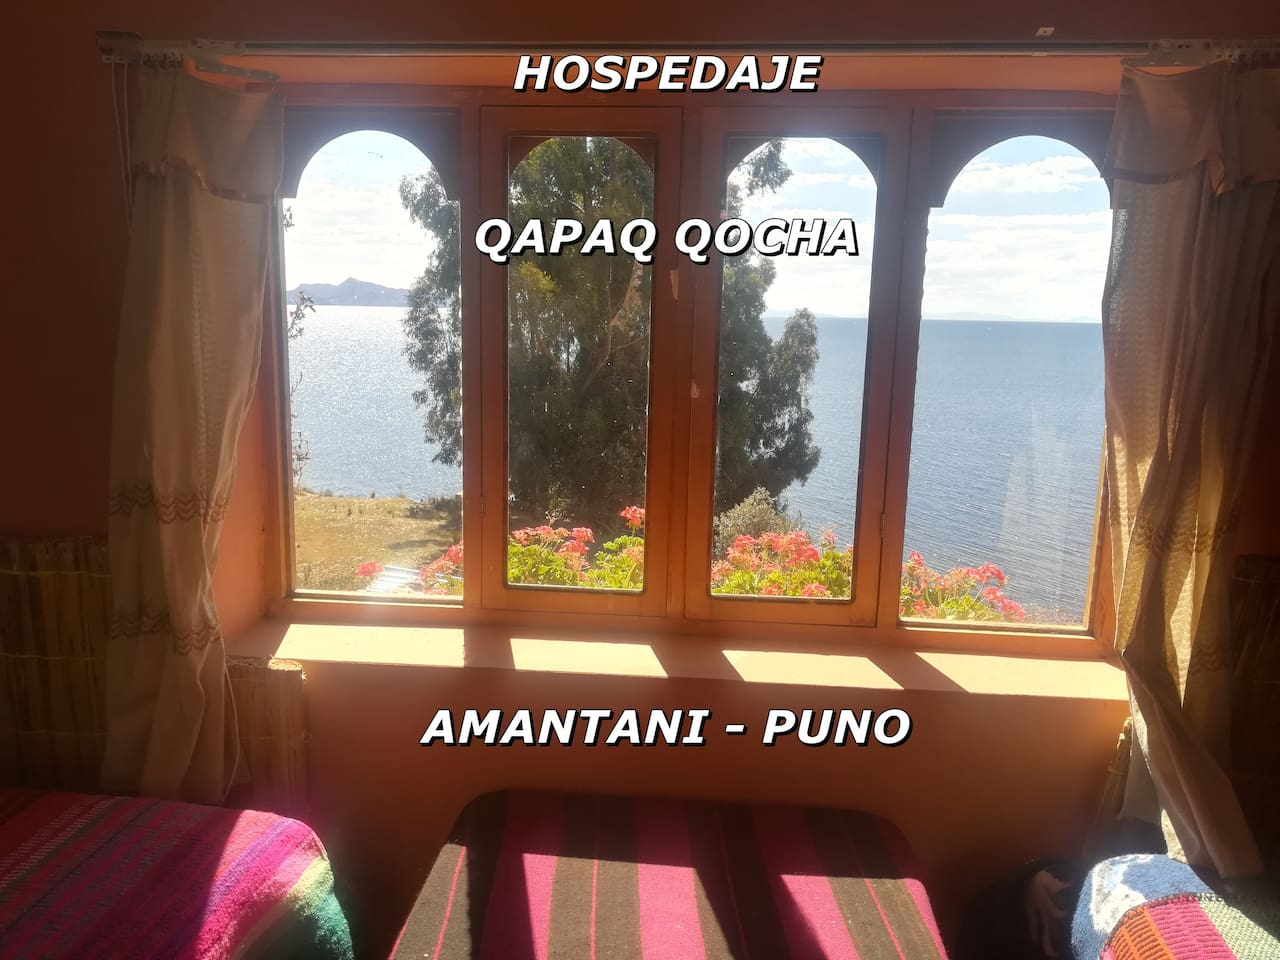 The family AmantaniQocha Lodge placed in the lake Titicaca of Amantani Island offers a traditional way of dressing and dishes local for All visitors can request to dress and take photos.